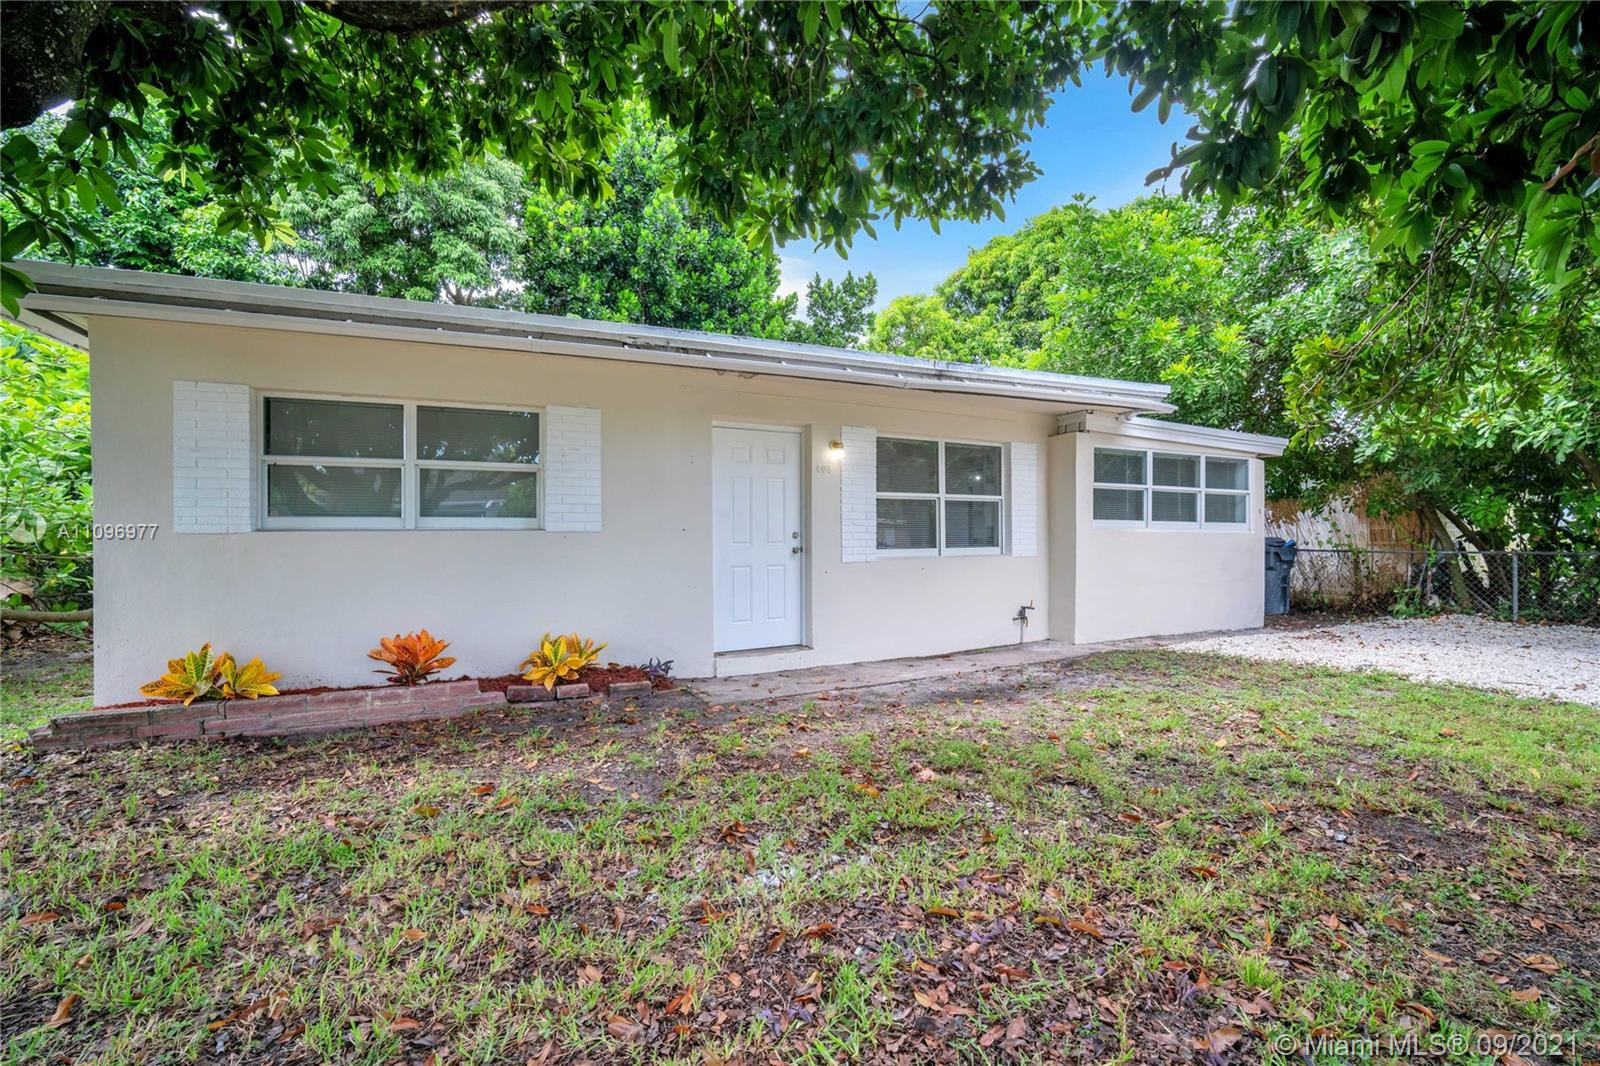 408 S 62nd Ave, Hollywood, Florida 33023